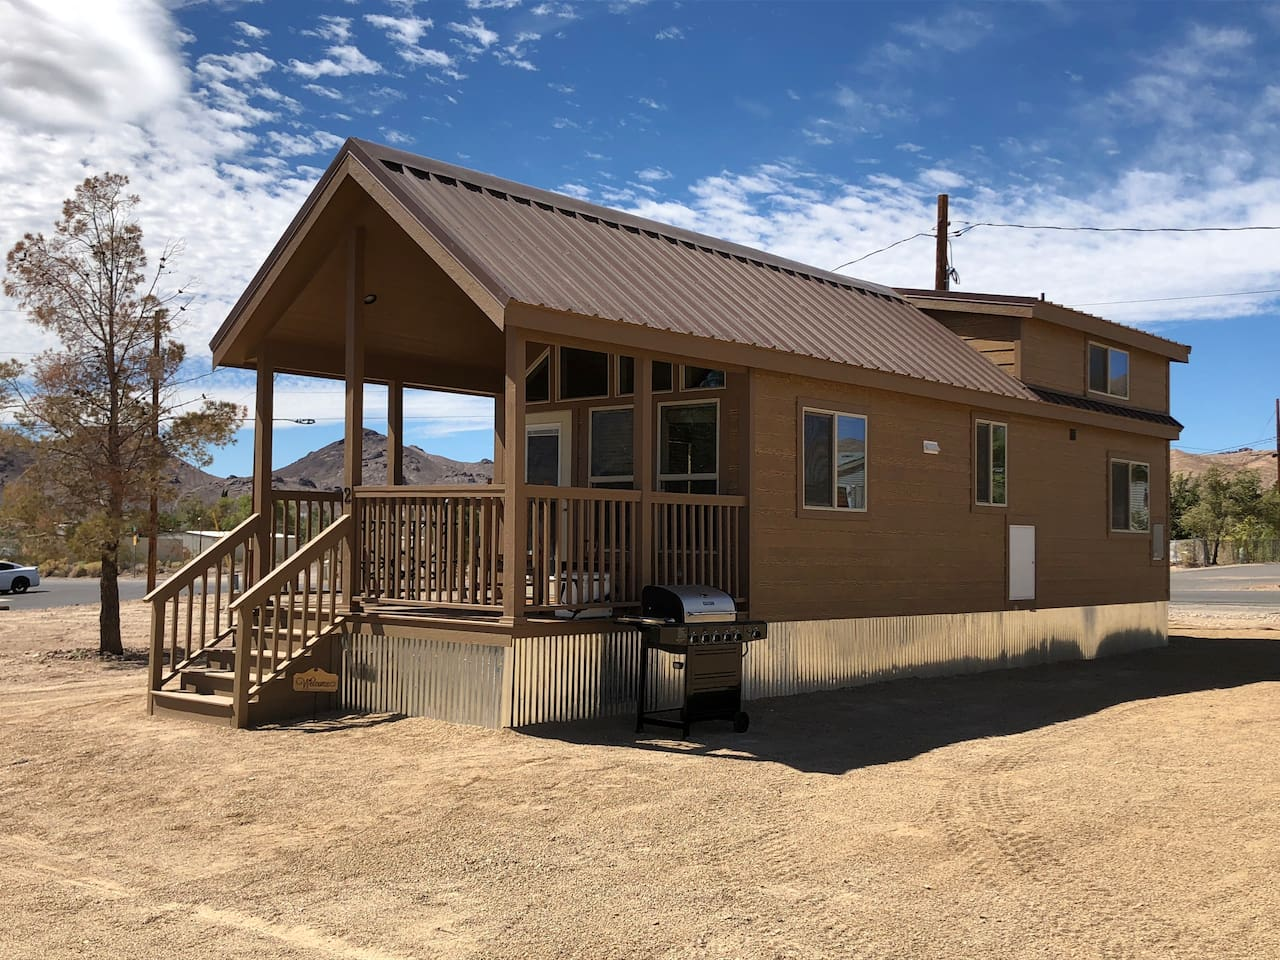 Wild West 2 - Death Valley Getaway Cabin will impress you with rustic charm and great hospitality.  Amenities include your own personal grill and covered porch.  Sit by the fire pit in the evening and Star Gaze with friends.